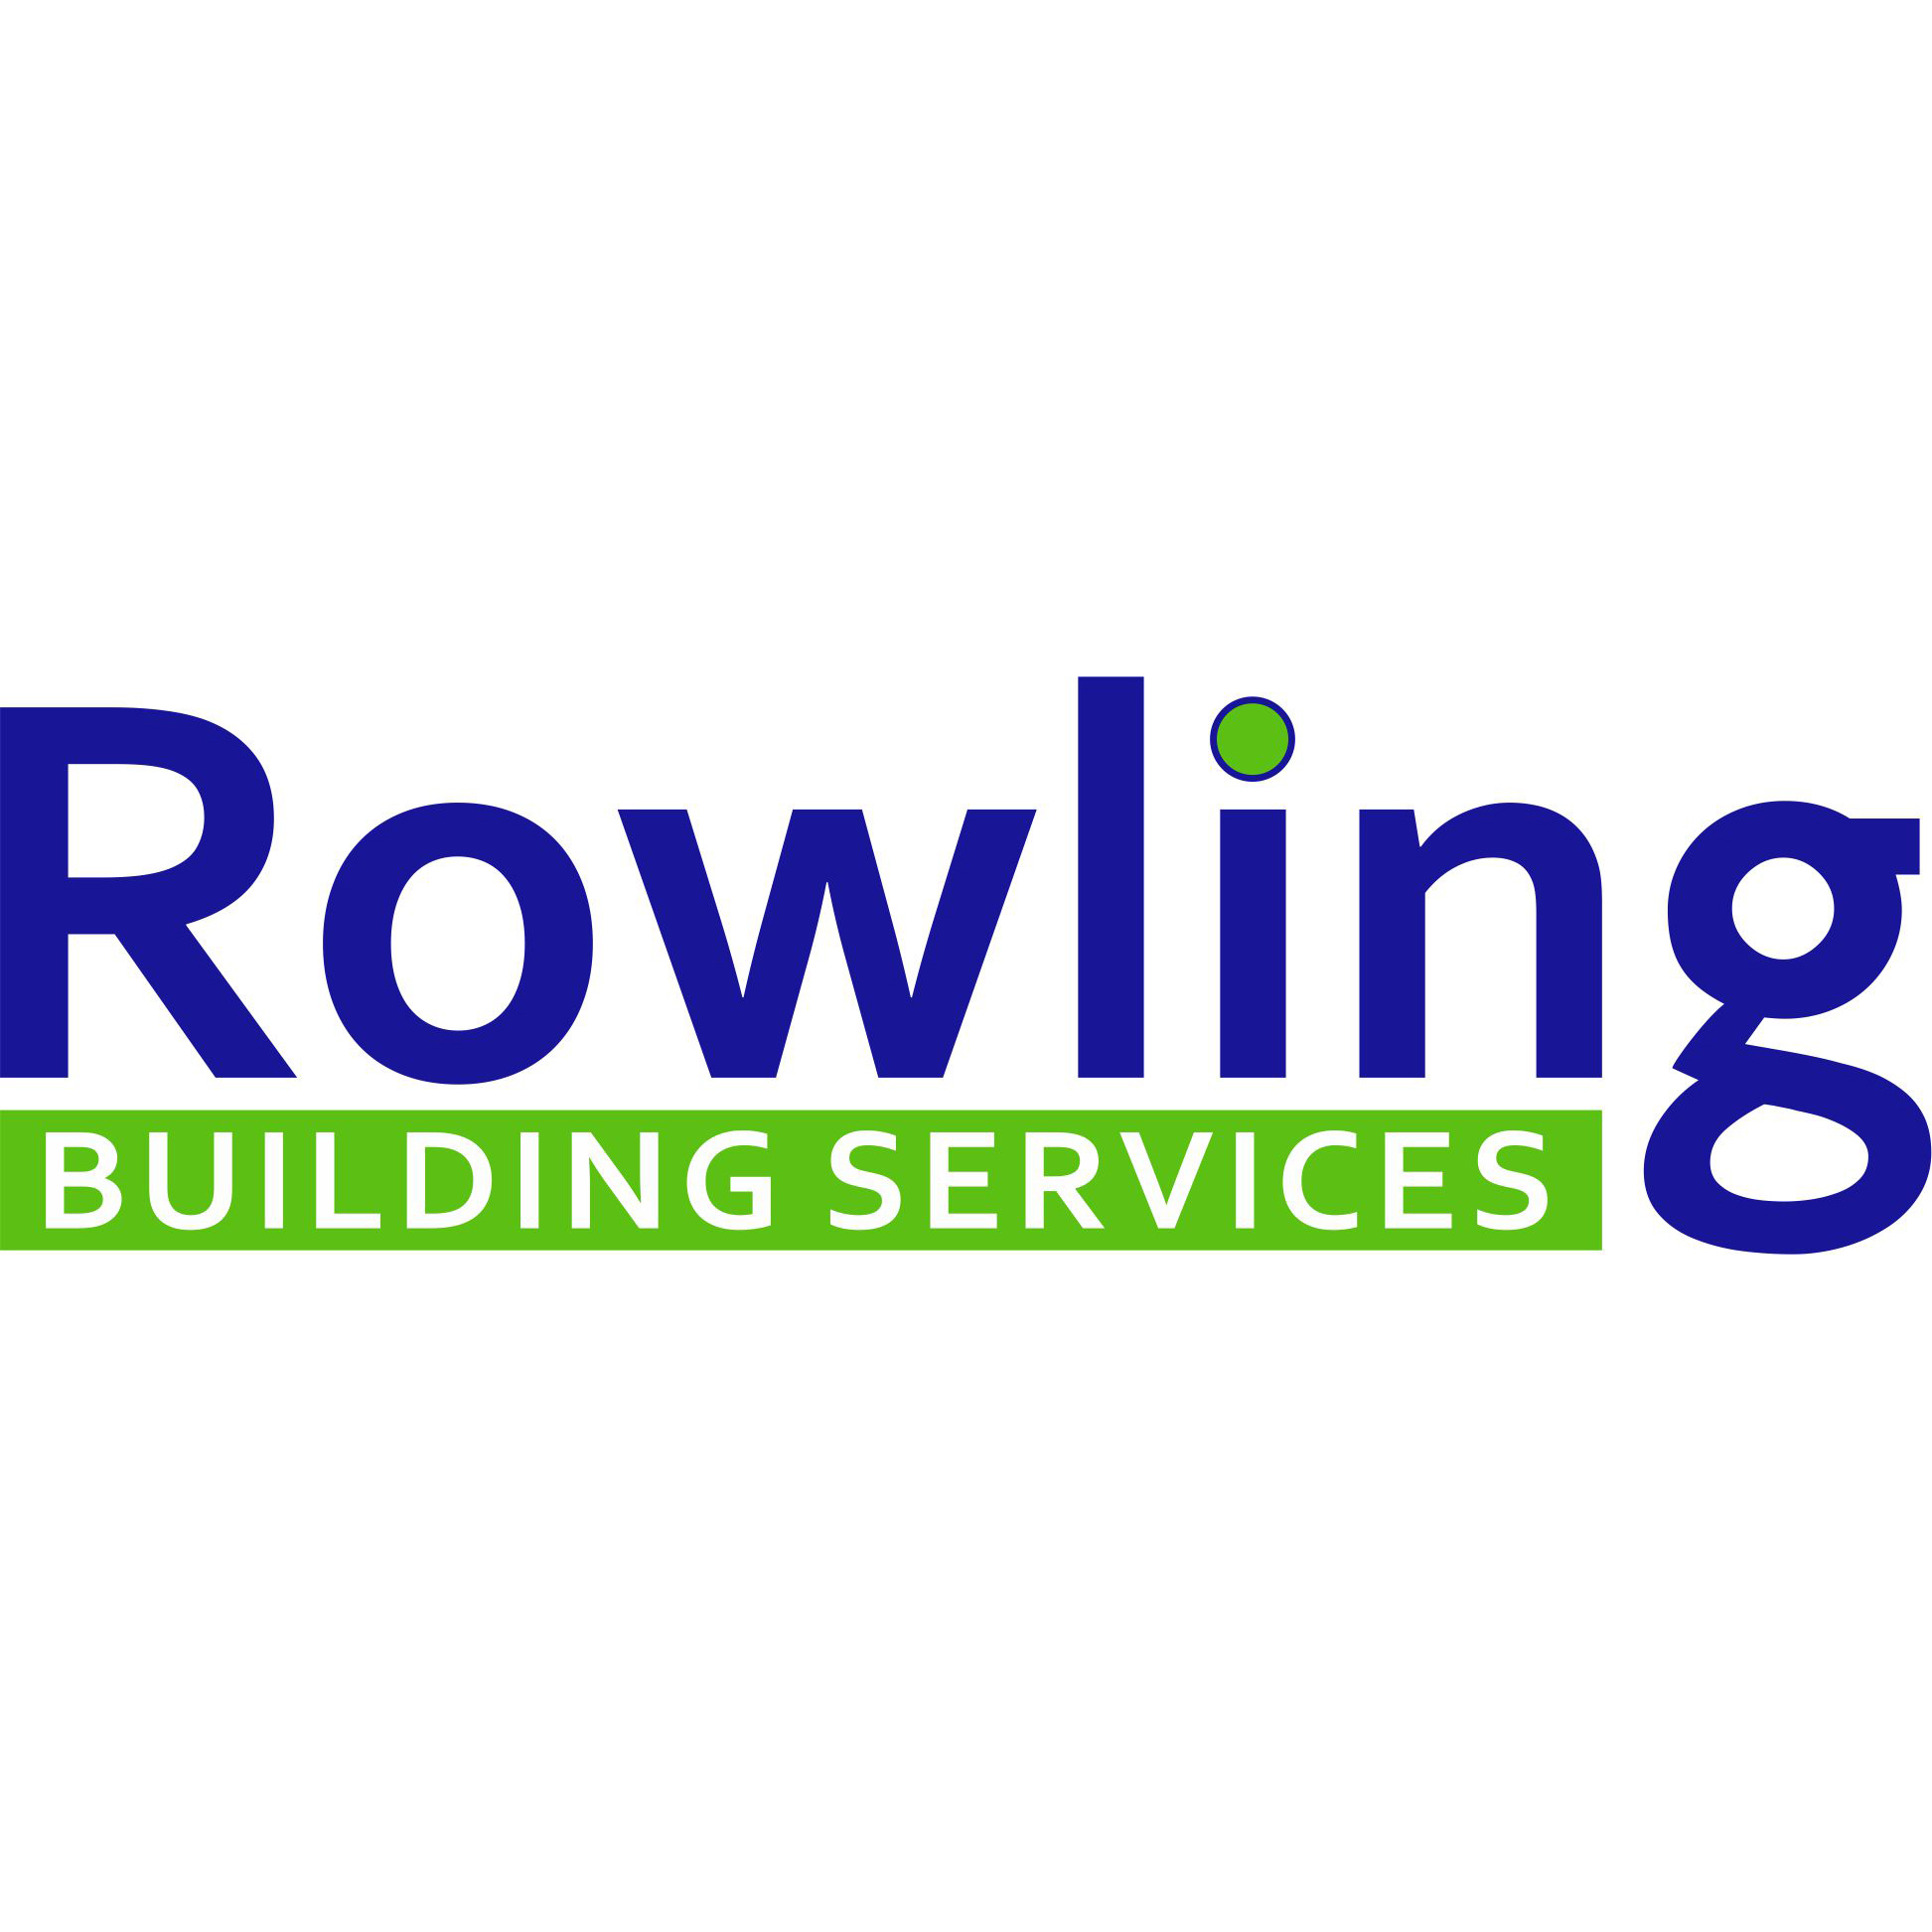 Rowling Building Services